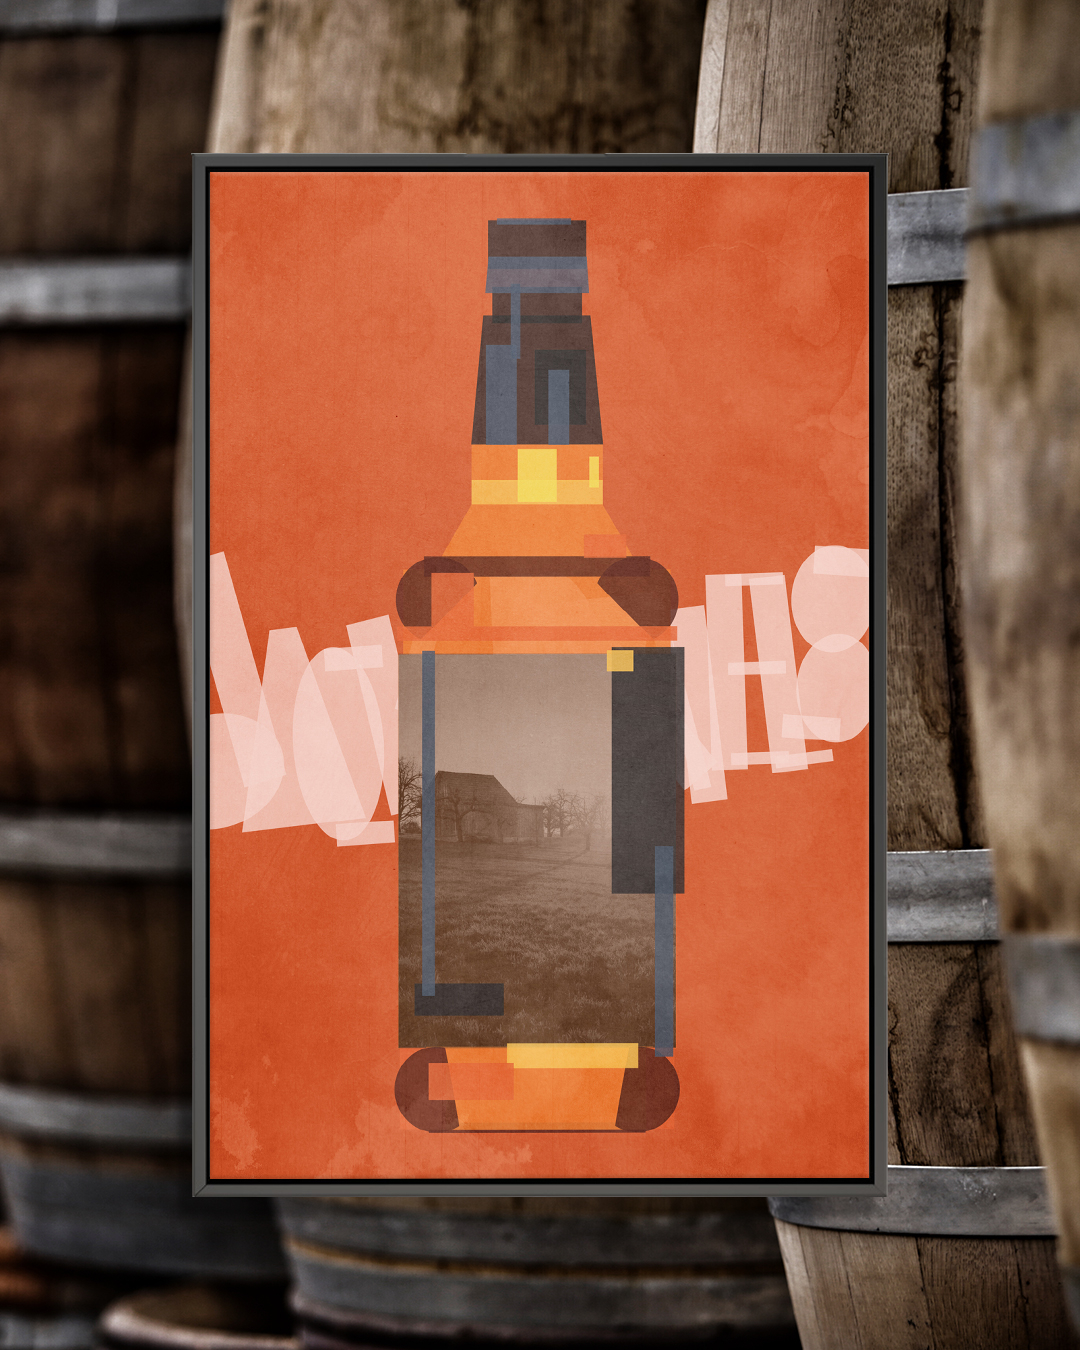 Digital graphic of the outline of a Jack Daniel's whiskey bottle on an orange background